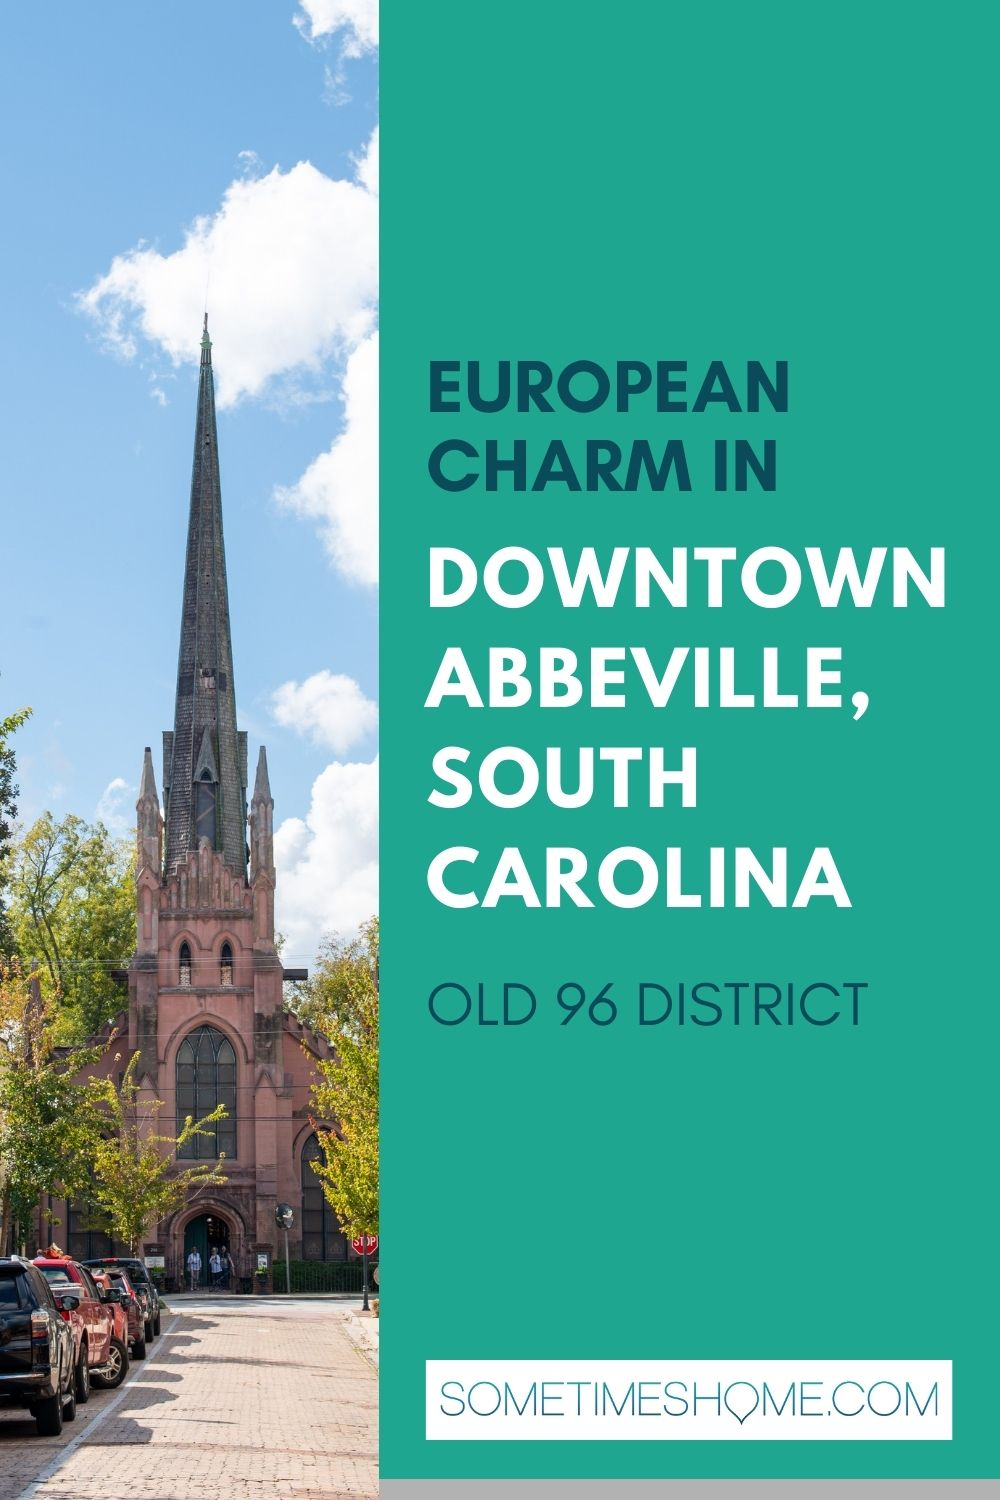 Pinterest image with a picture of a Gothic church on the left and text on the right for Downtown Abbeville in South Carolina.